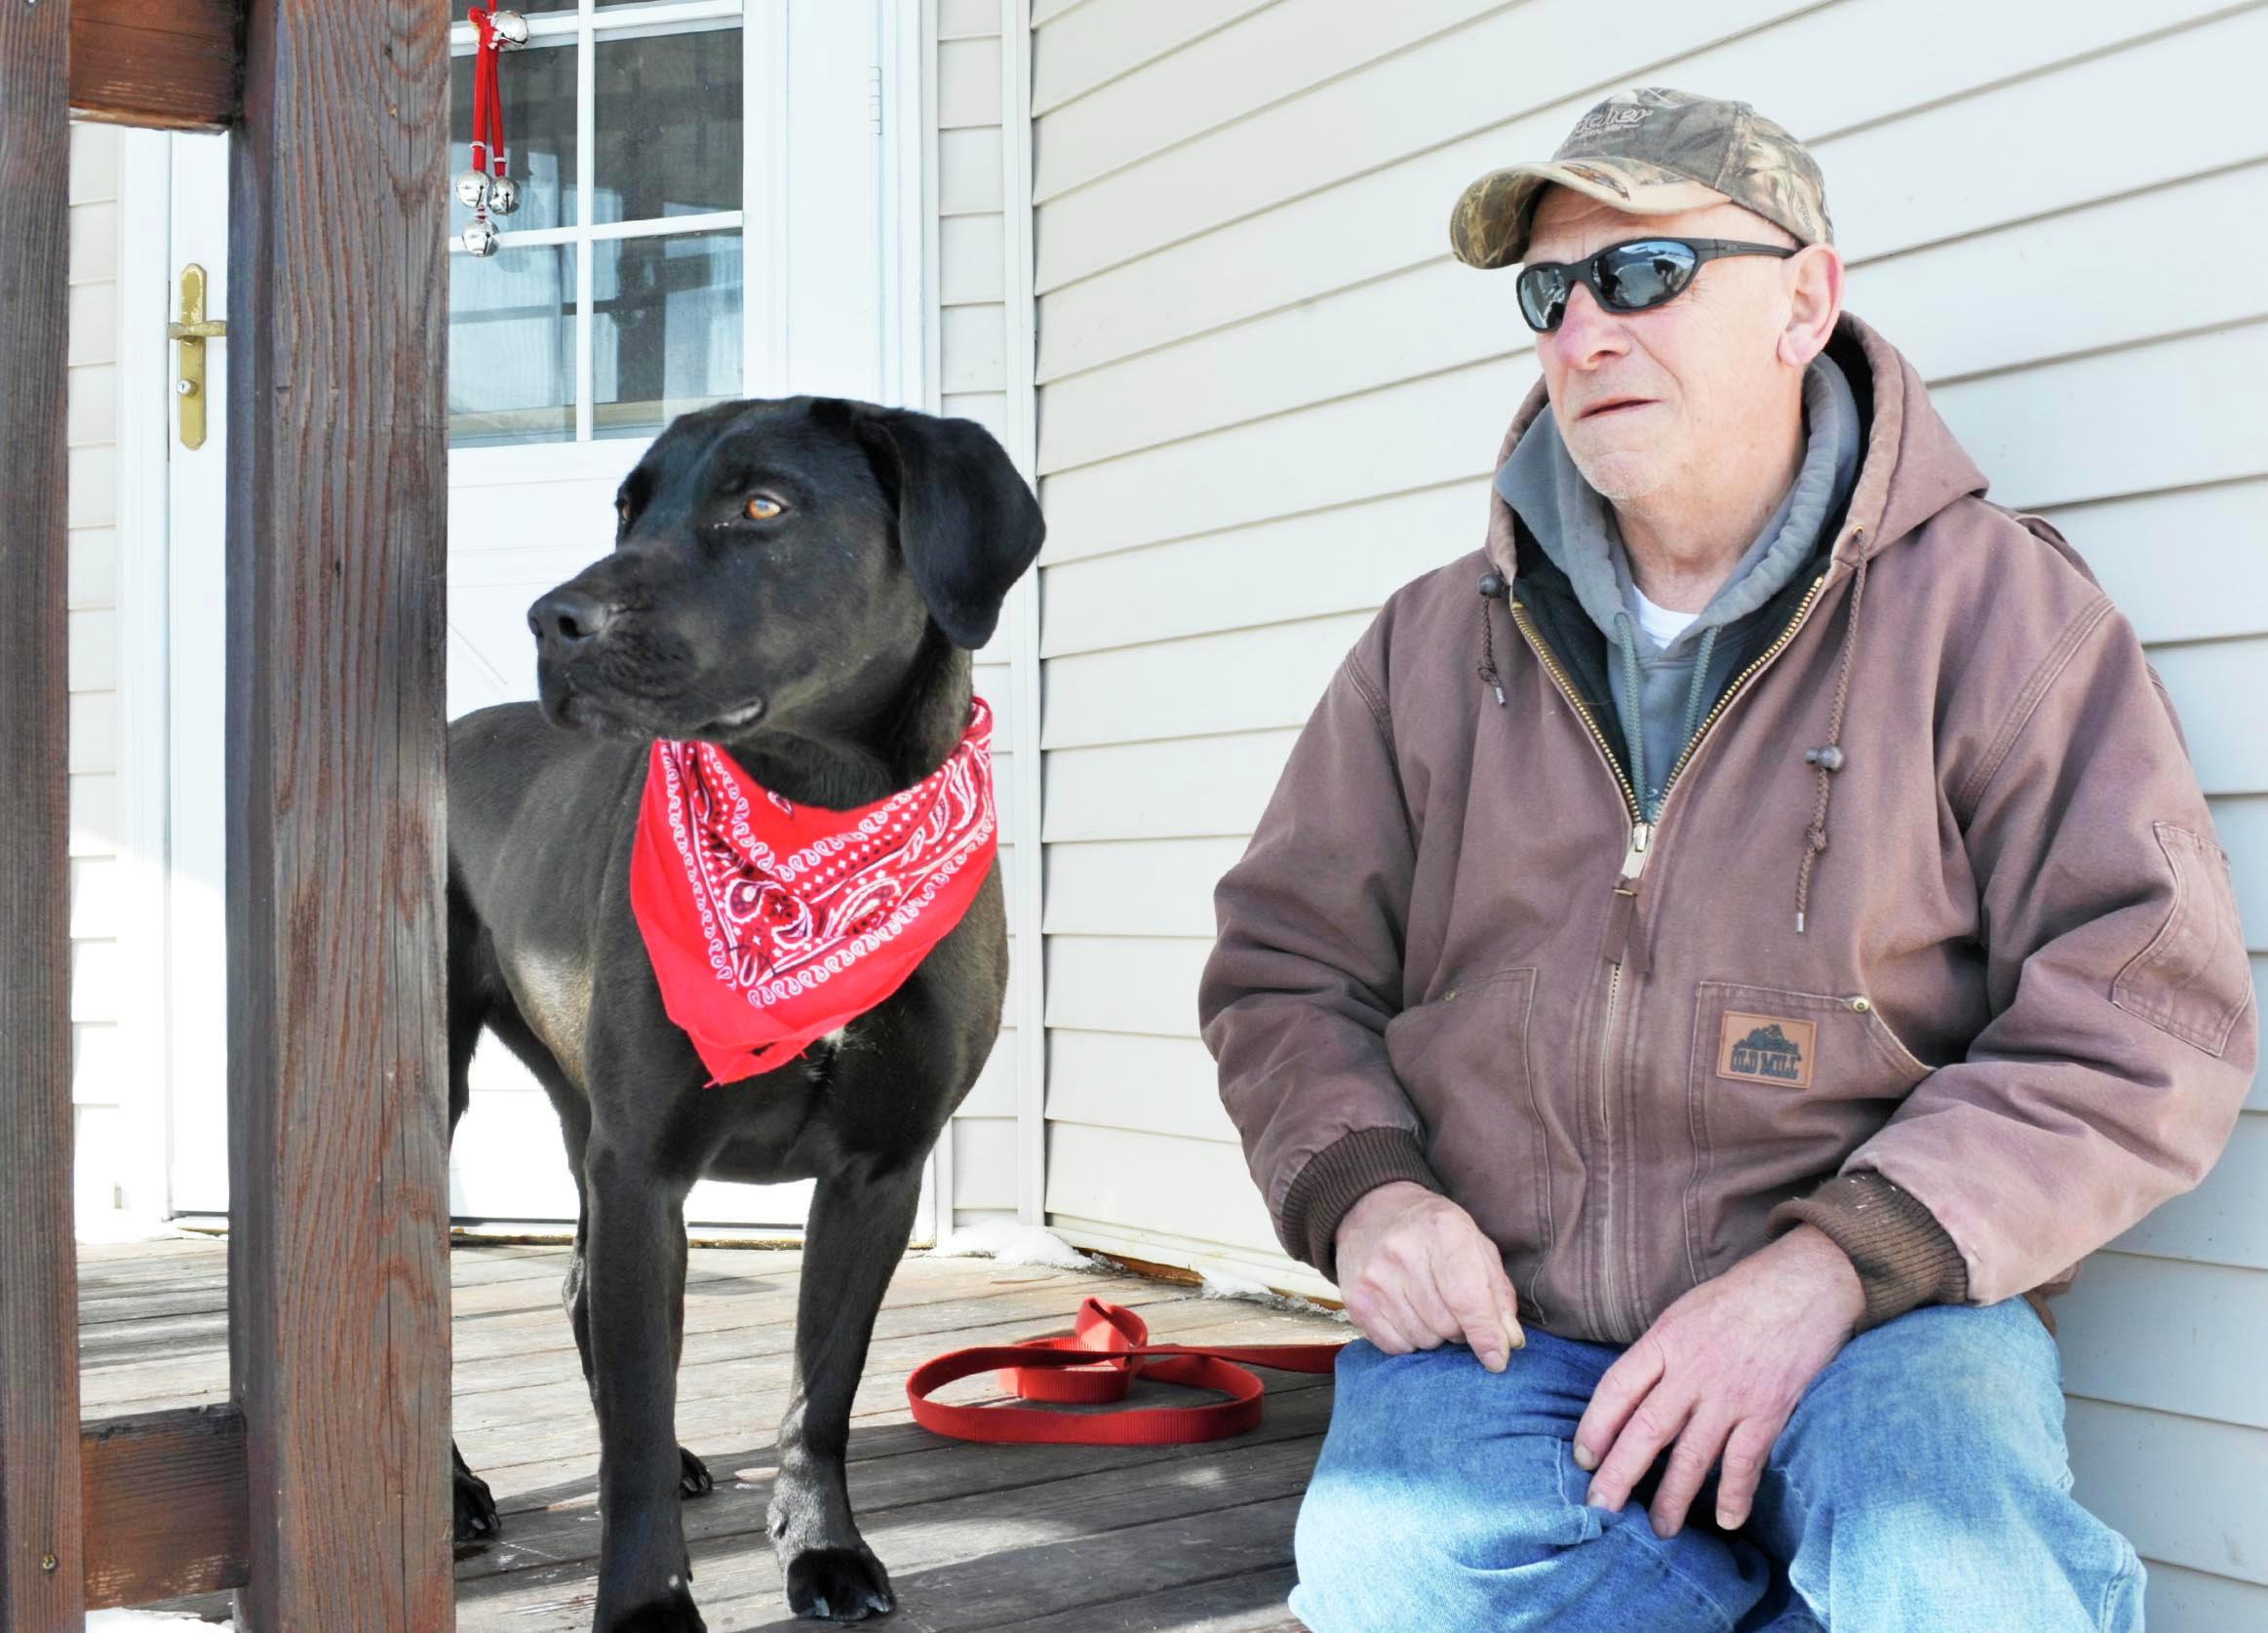 Tim Curfman, along with his black lab, Midnight, looks toward the house next door where they helped rescue their neighbor after she fell and couldn't get up on a cold day in early February. Midnight alerted Curfman that something was wrong. (Lowell Anderson / Echo Press)